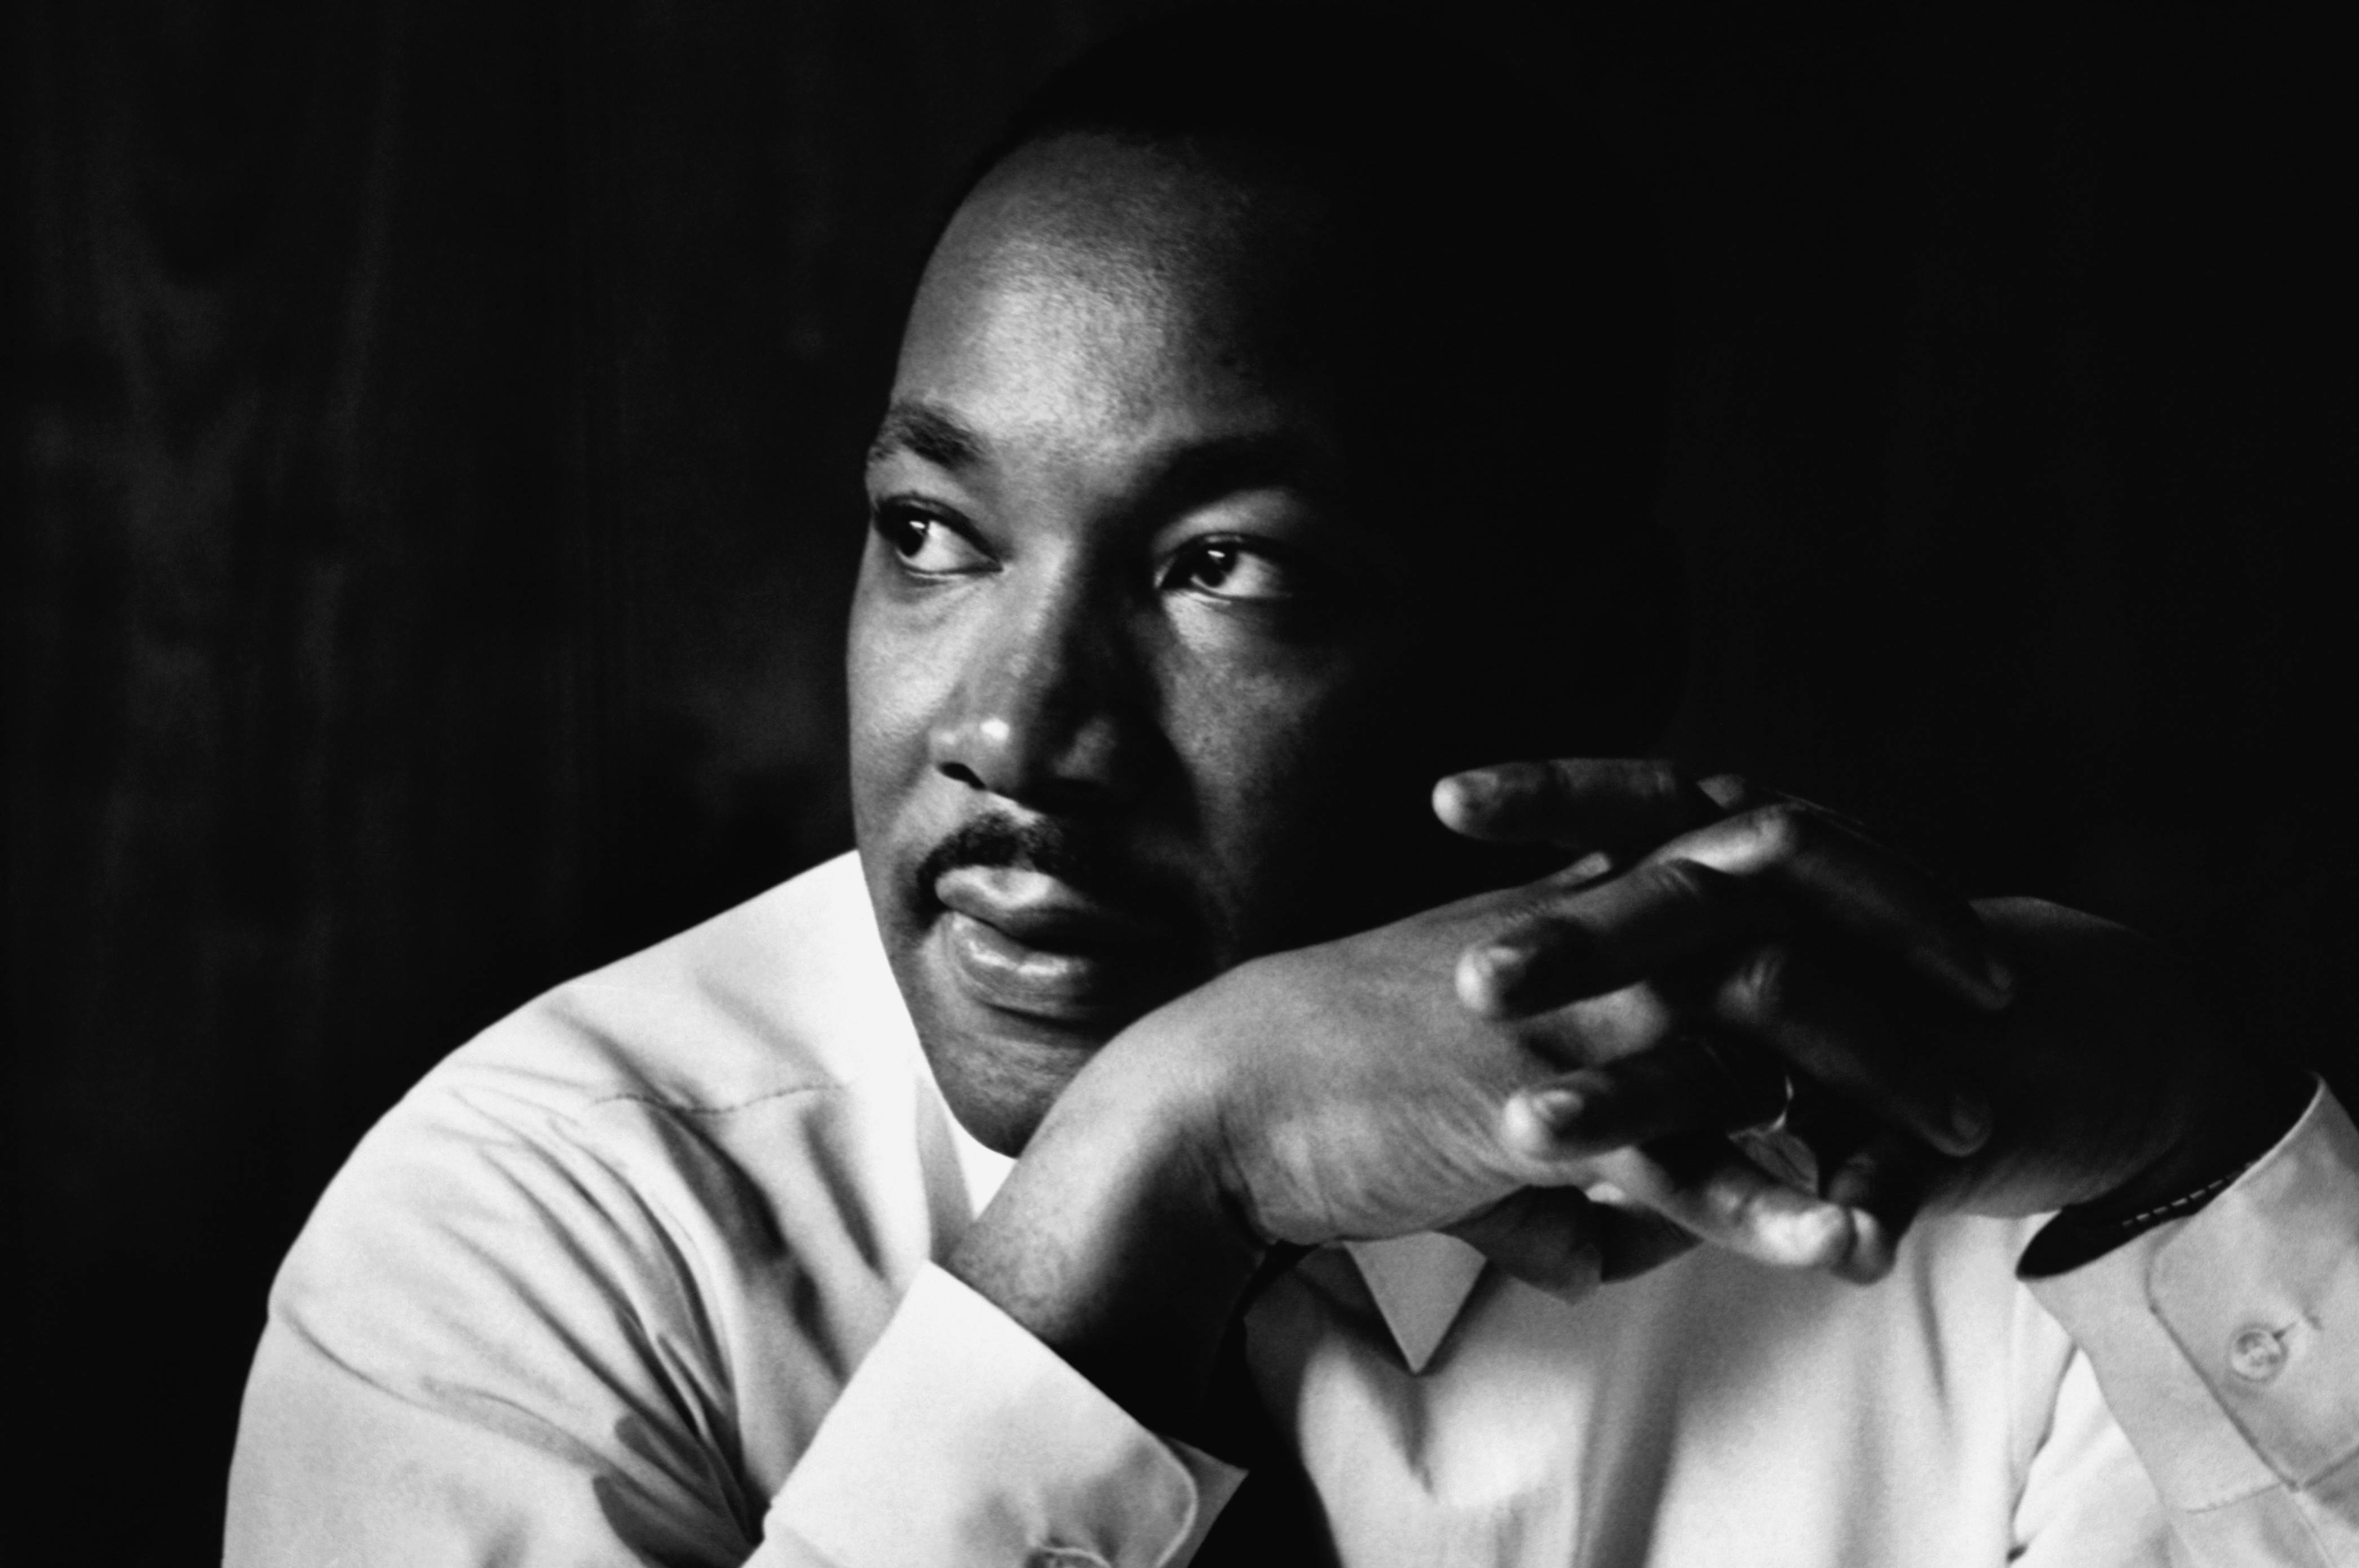 Martin Luther King Jr. will be honored at events, services and programs throughout the suburbs.